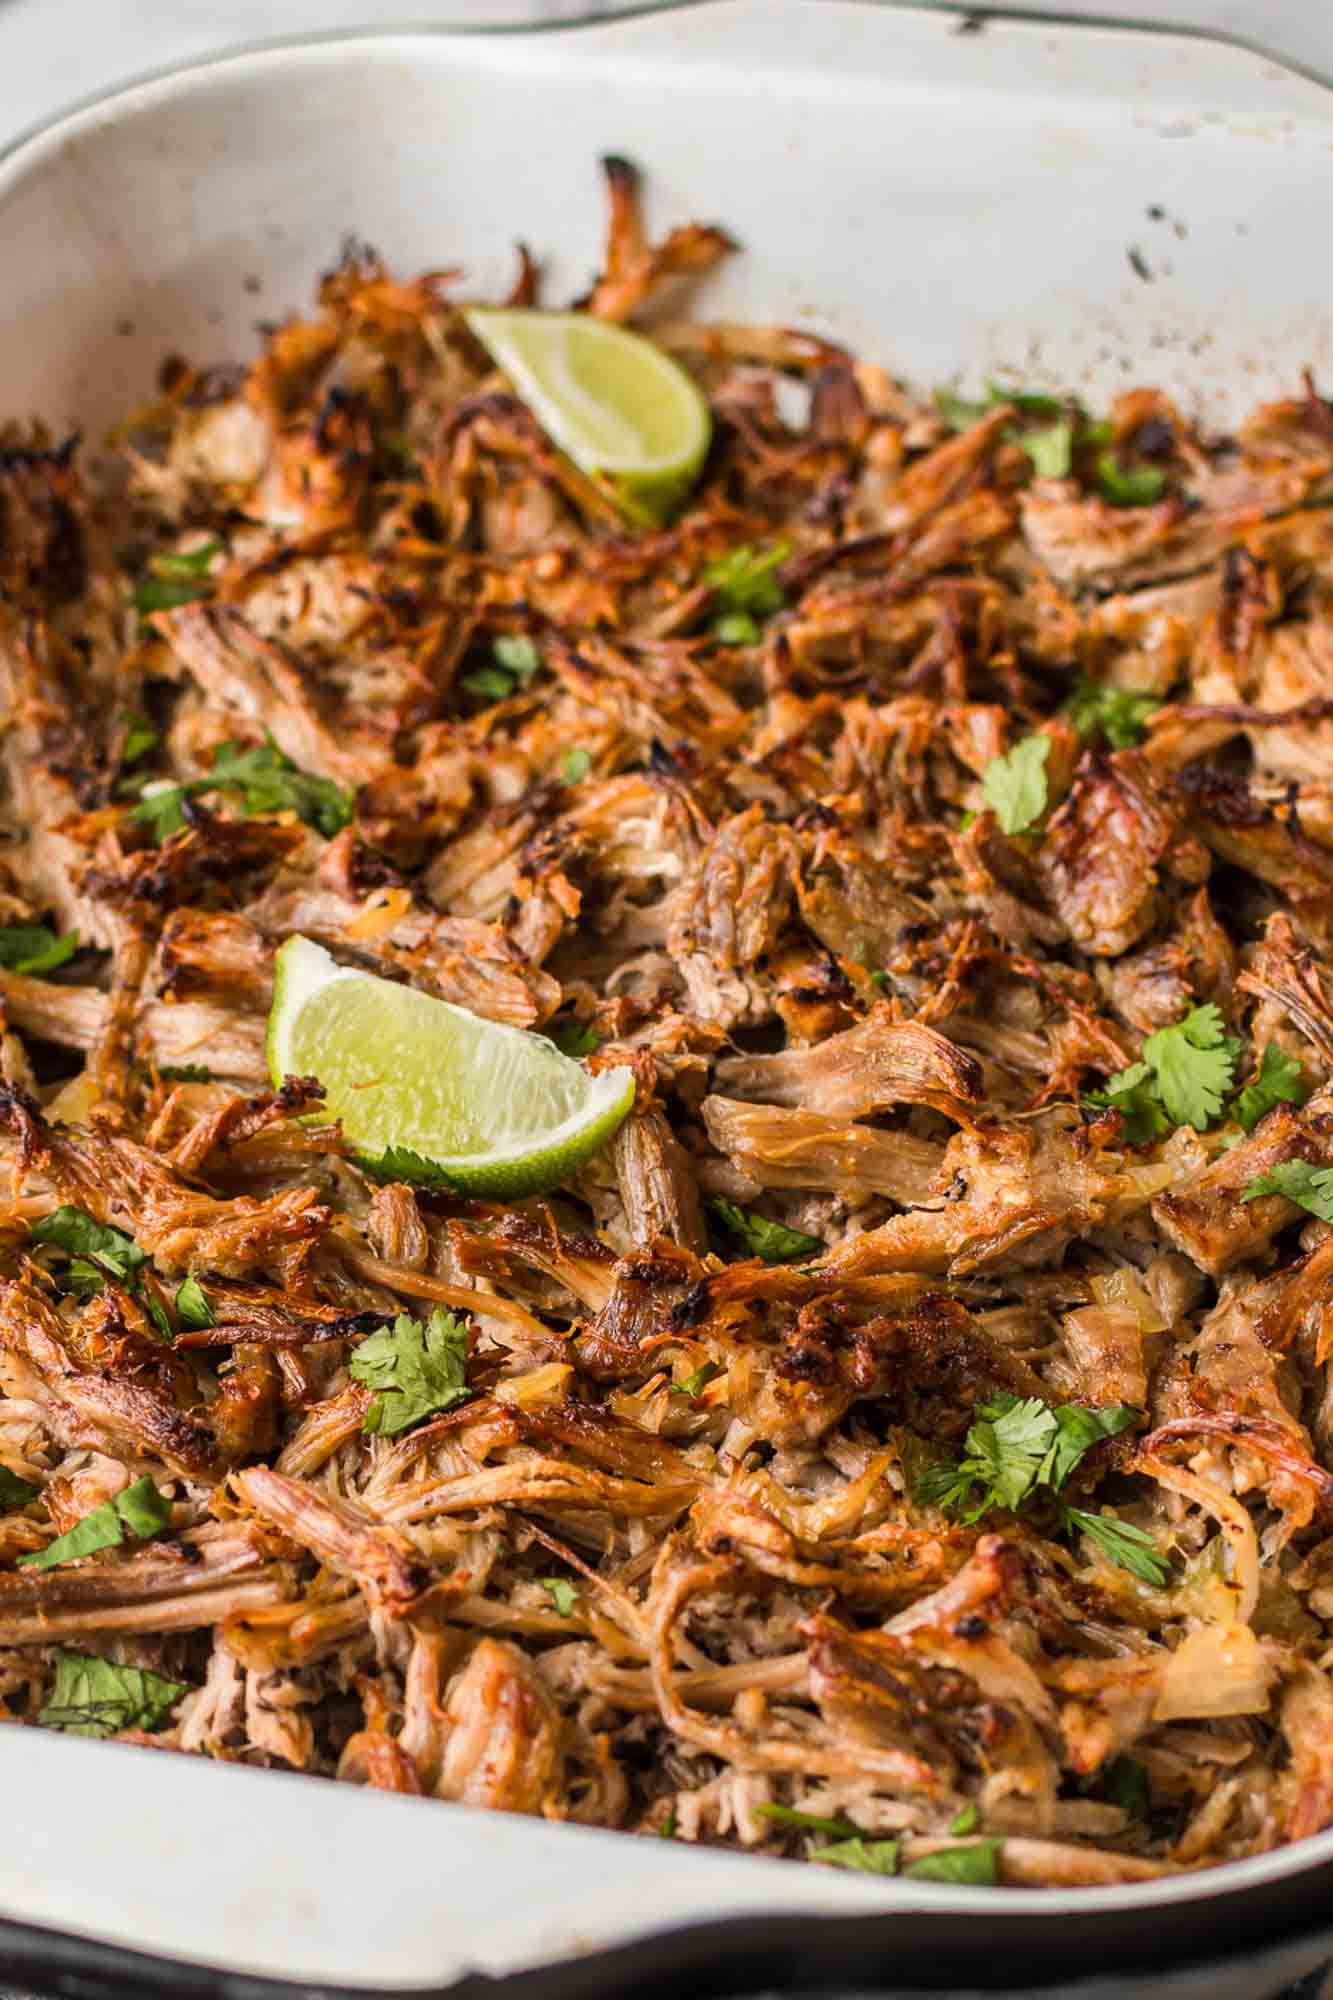 Crispy shredded carnitas in a pan with lime wedges and fresh cilantro